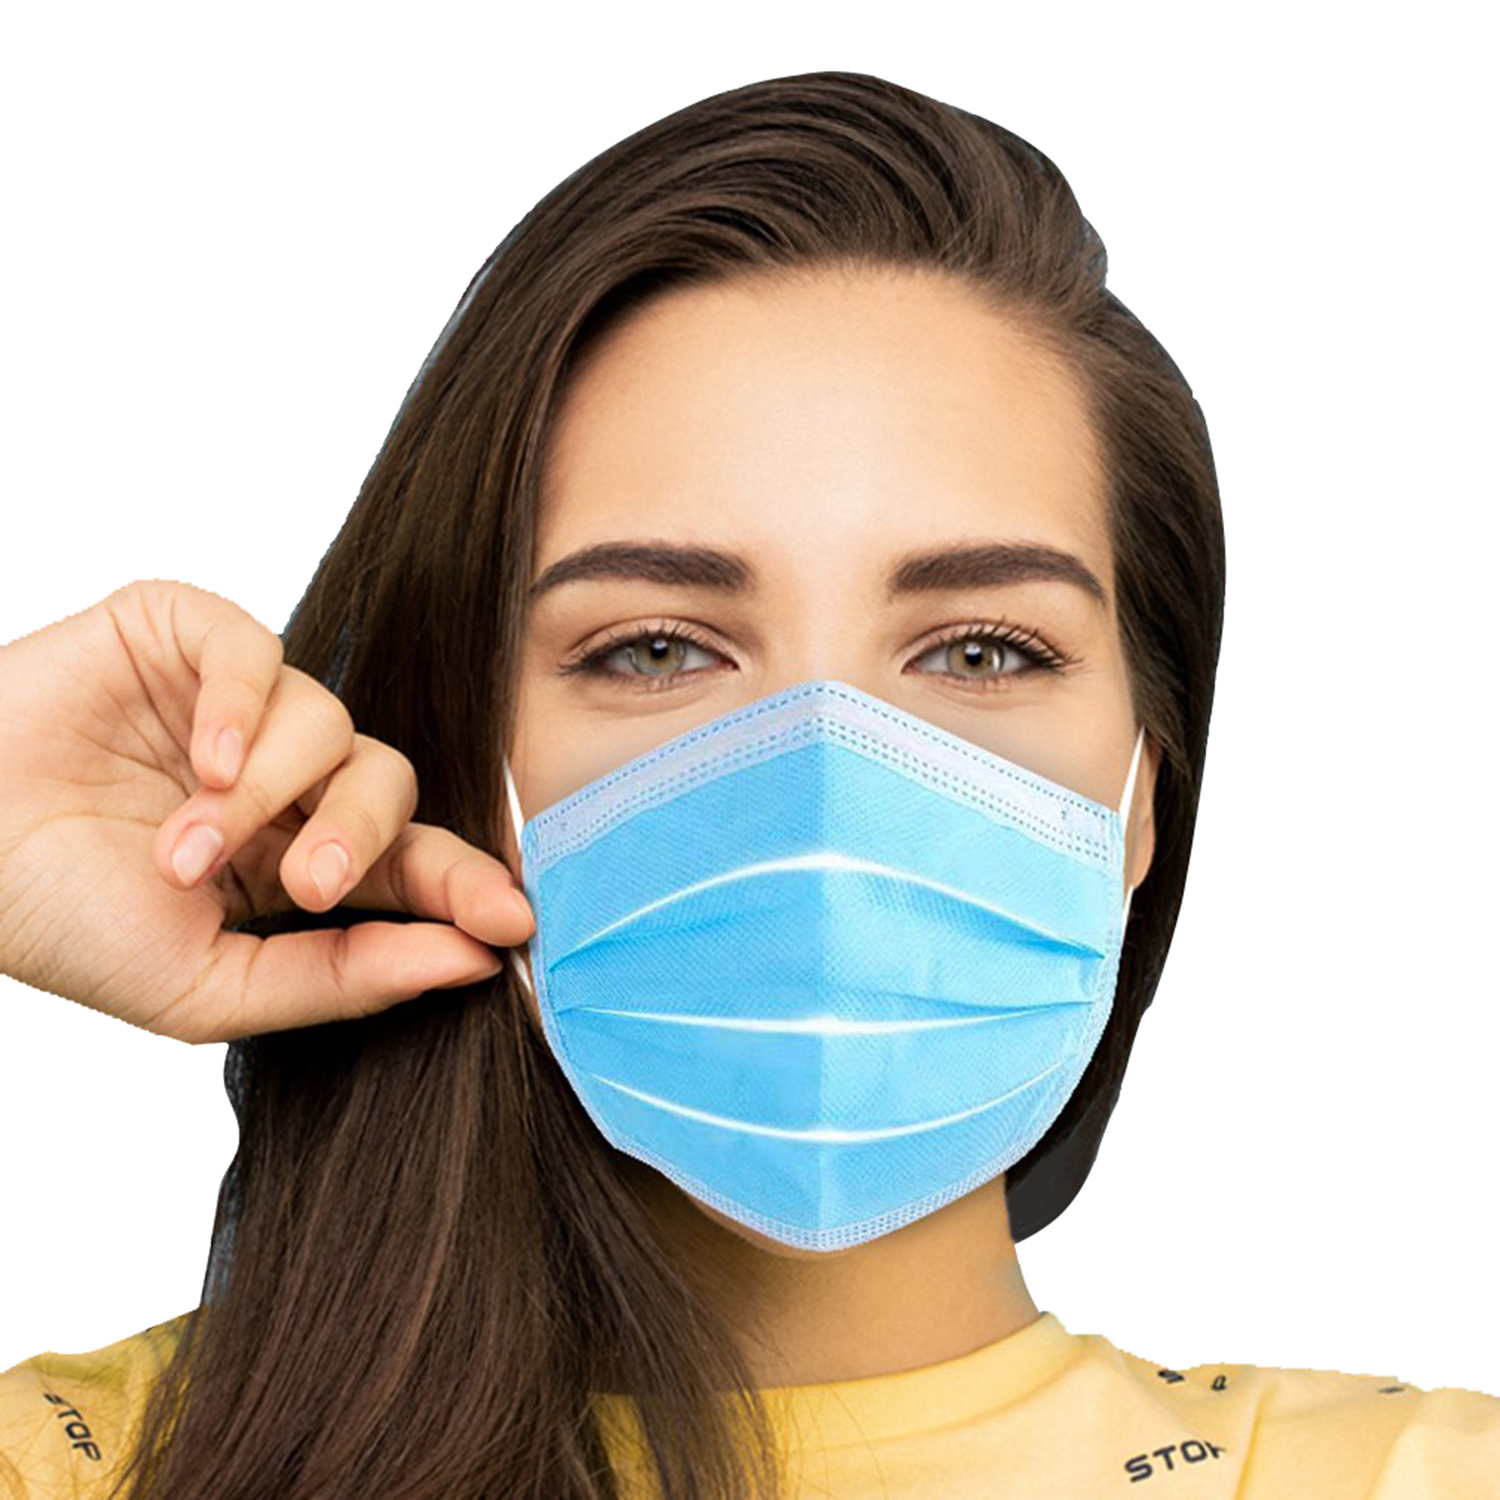 100/50/40/30/20/10pcs Disposable Face Mouth Mask Anti-dust Bacteria Proof Breathable Kids Adult Ear Loop Filter Masks Respirator